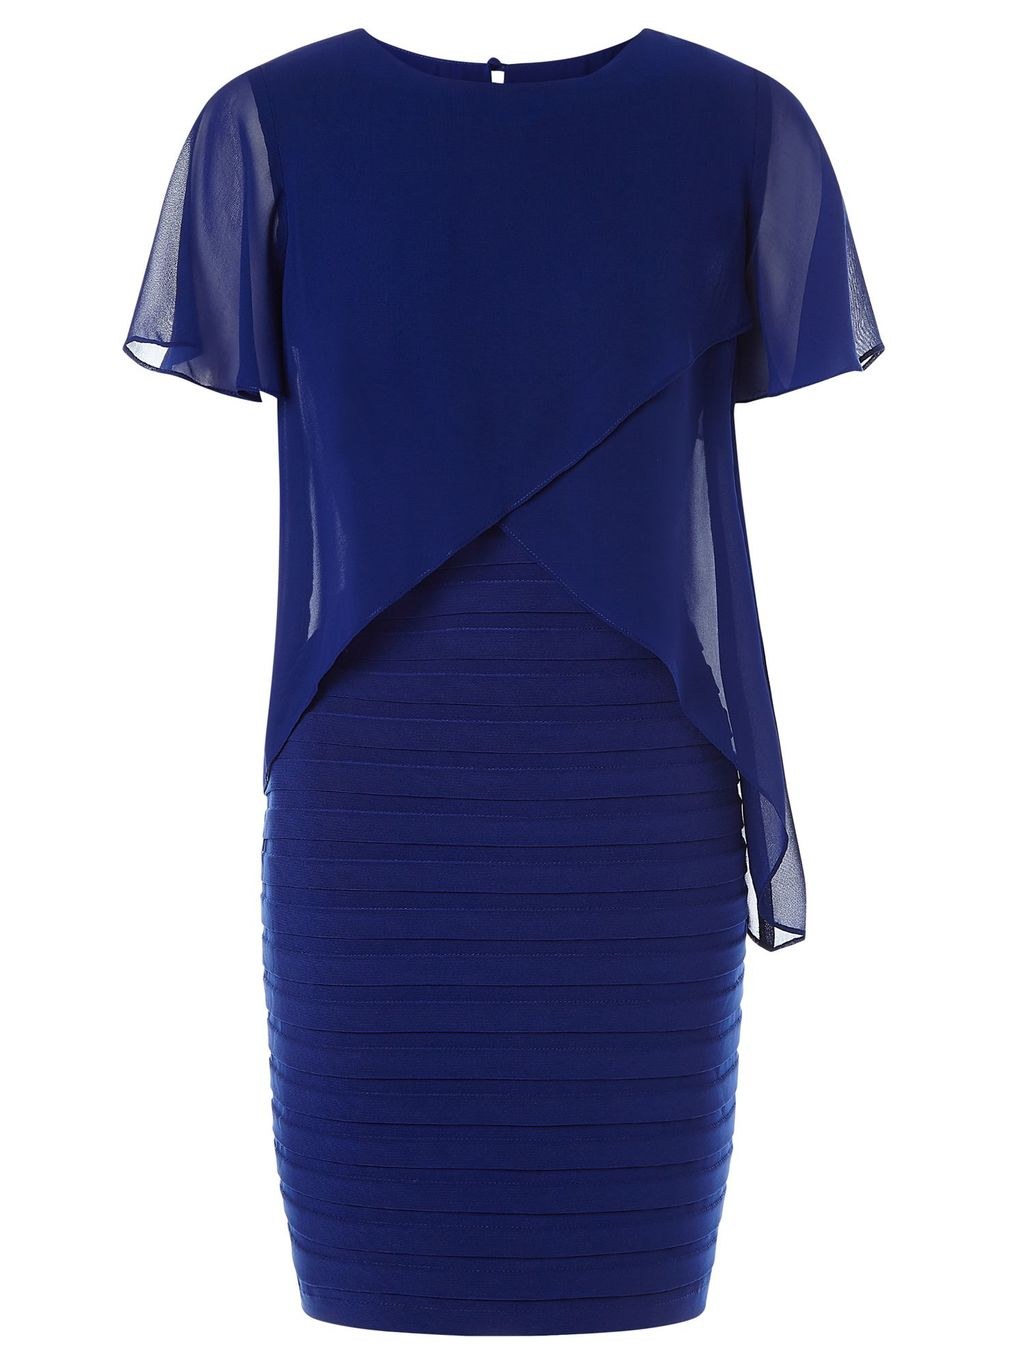 Short Sleeve Layer Bandeau Dress, Blue - style: shift; length: mini; fit: tailored/fitted; pattern: plain; predominant colour: royal blue; occasions: evening, occasion; fibres: polyester/polyamide - stretch; neckline: crew; hip detail: adds bulk at the hips; sleeve length: short sleeve; sleeve style: standard; pattern type: fabric; texture group: other - light to midweight; shoulder detail: sheer at shoulder; season: s/s 2016; wardrobe: event